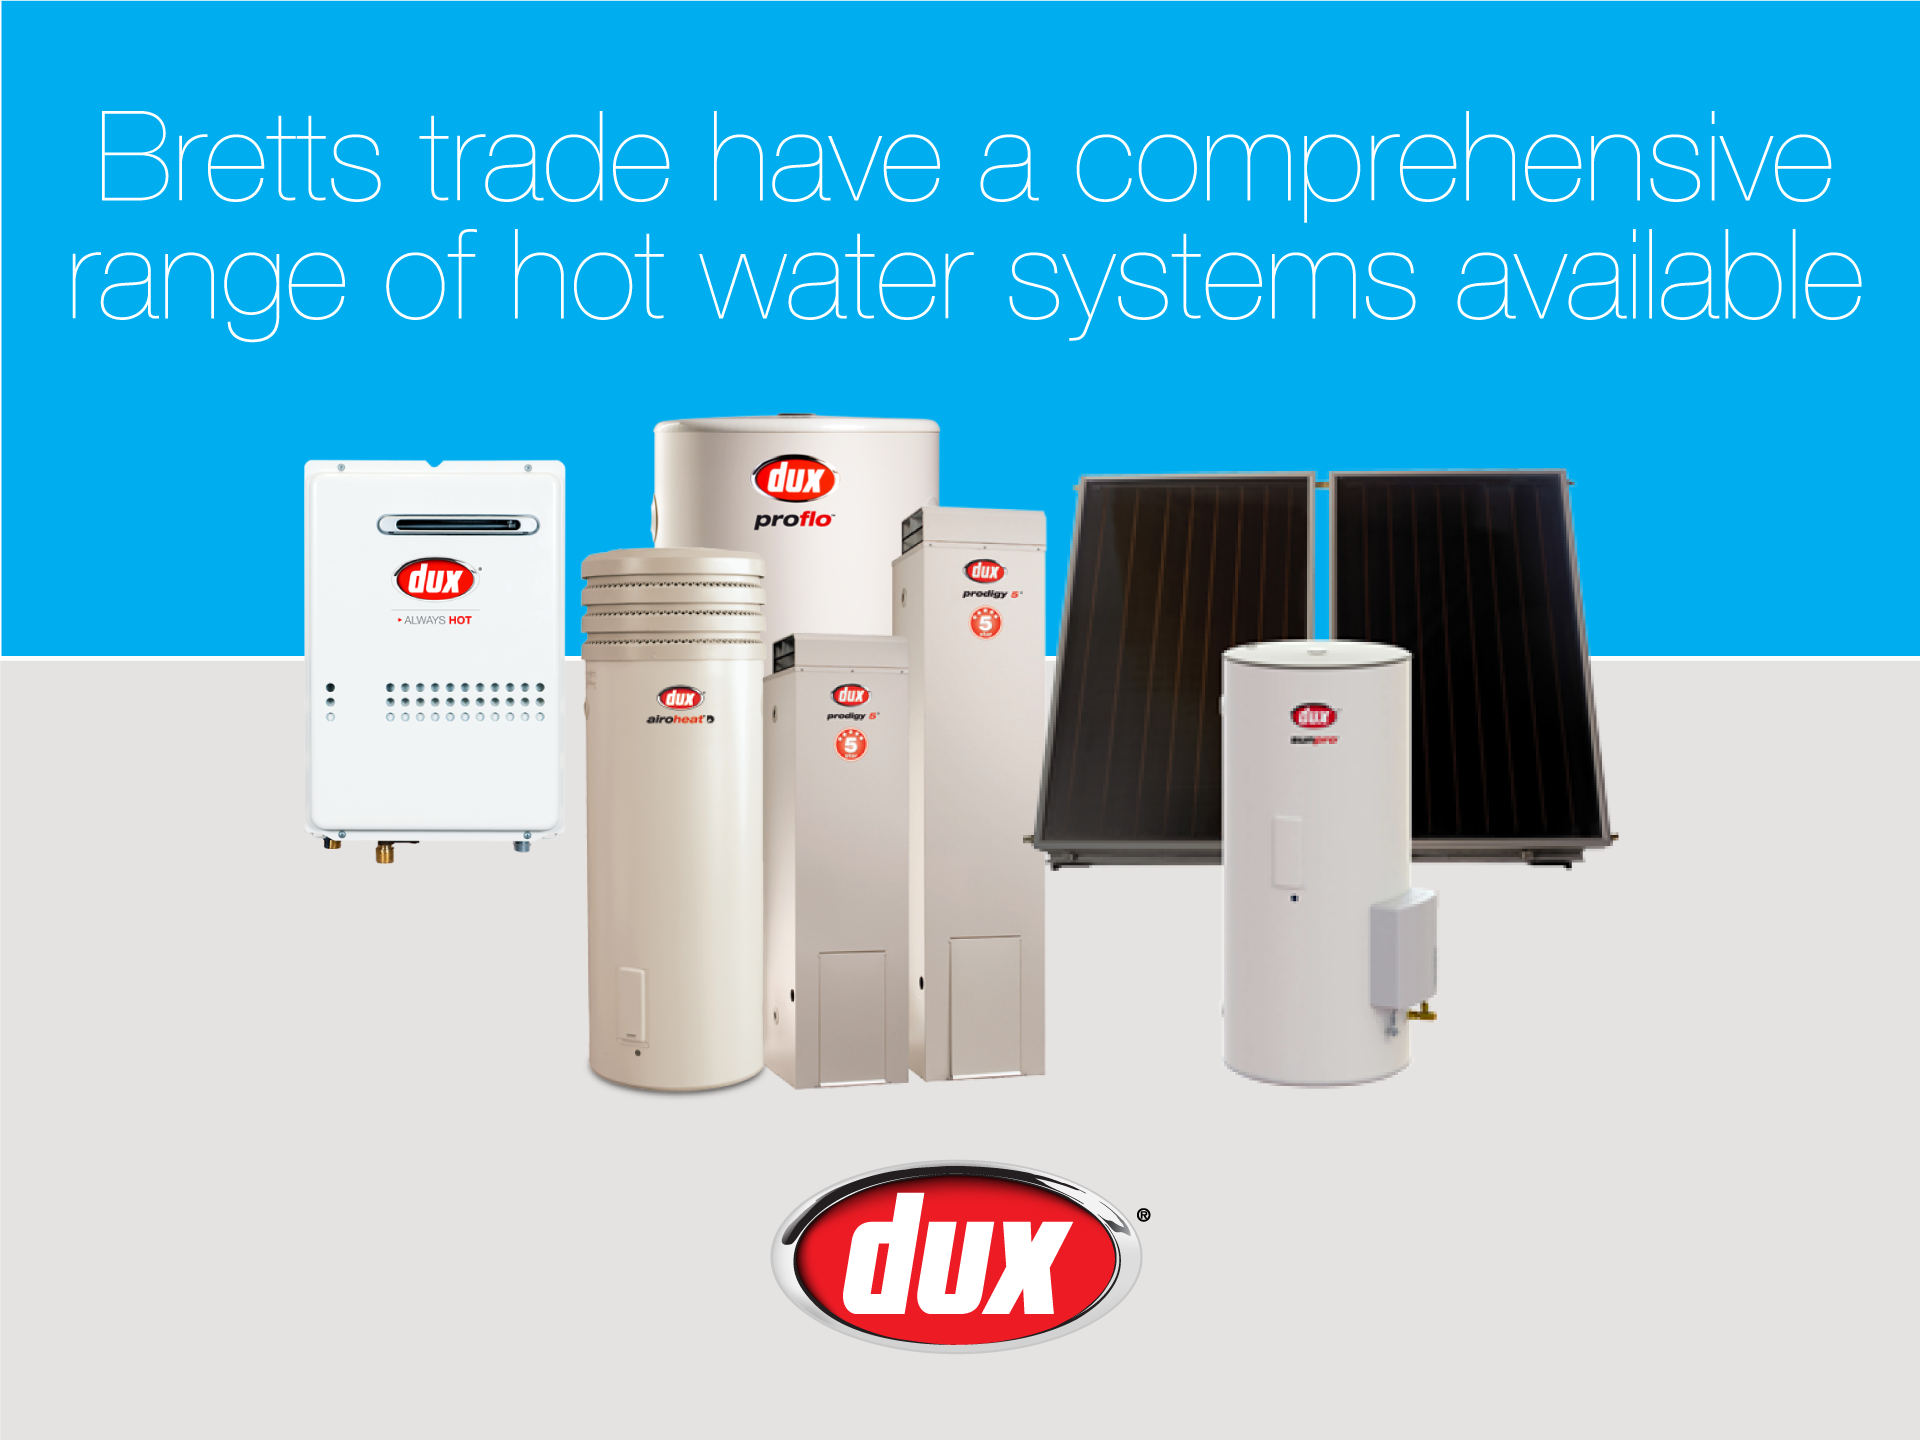 Dux hot water